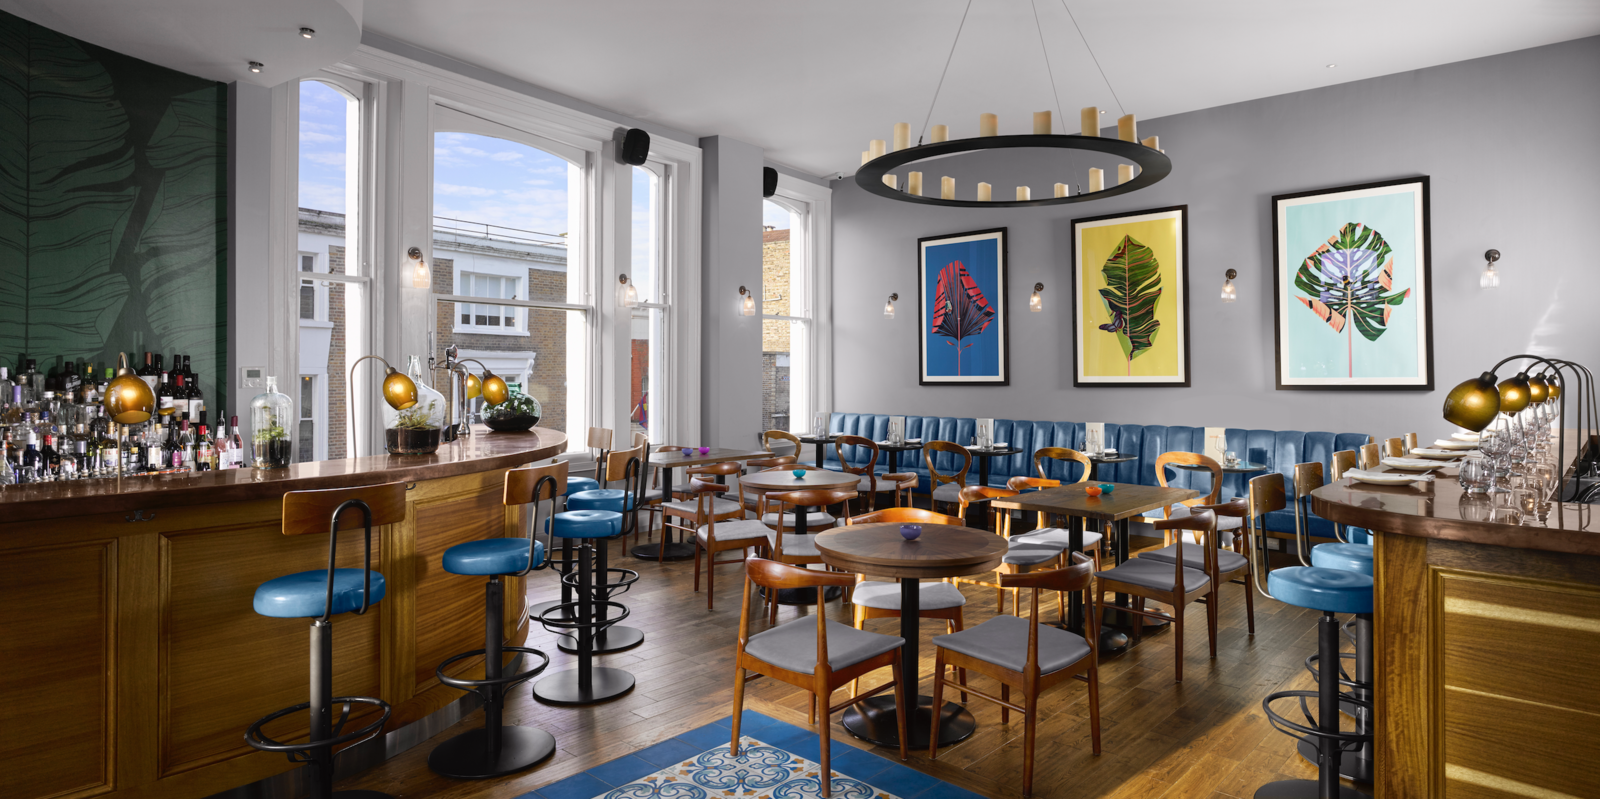 When you visit The Distillery, you'll find GinTonica on the first floor, a Spanish-inspired bar and kitchen that celebrates Spain's connection to juniper. You can try a number of different experimental takes on the Gin and Tonic, which is served in a traditional Copa de Balón—a balloon goblet glass. Gin Enthusiasts Will Be Flocking to This New London Hotel - Photo 3 of 7